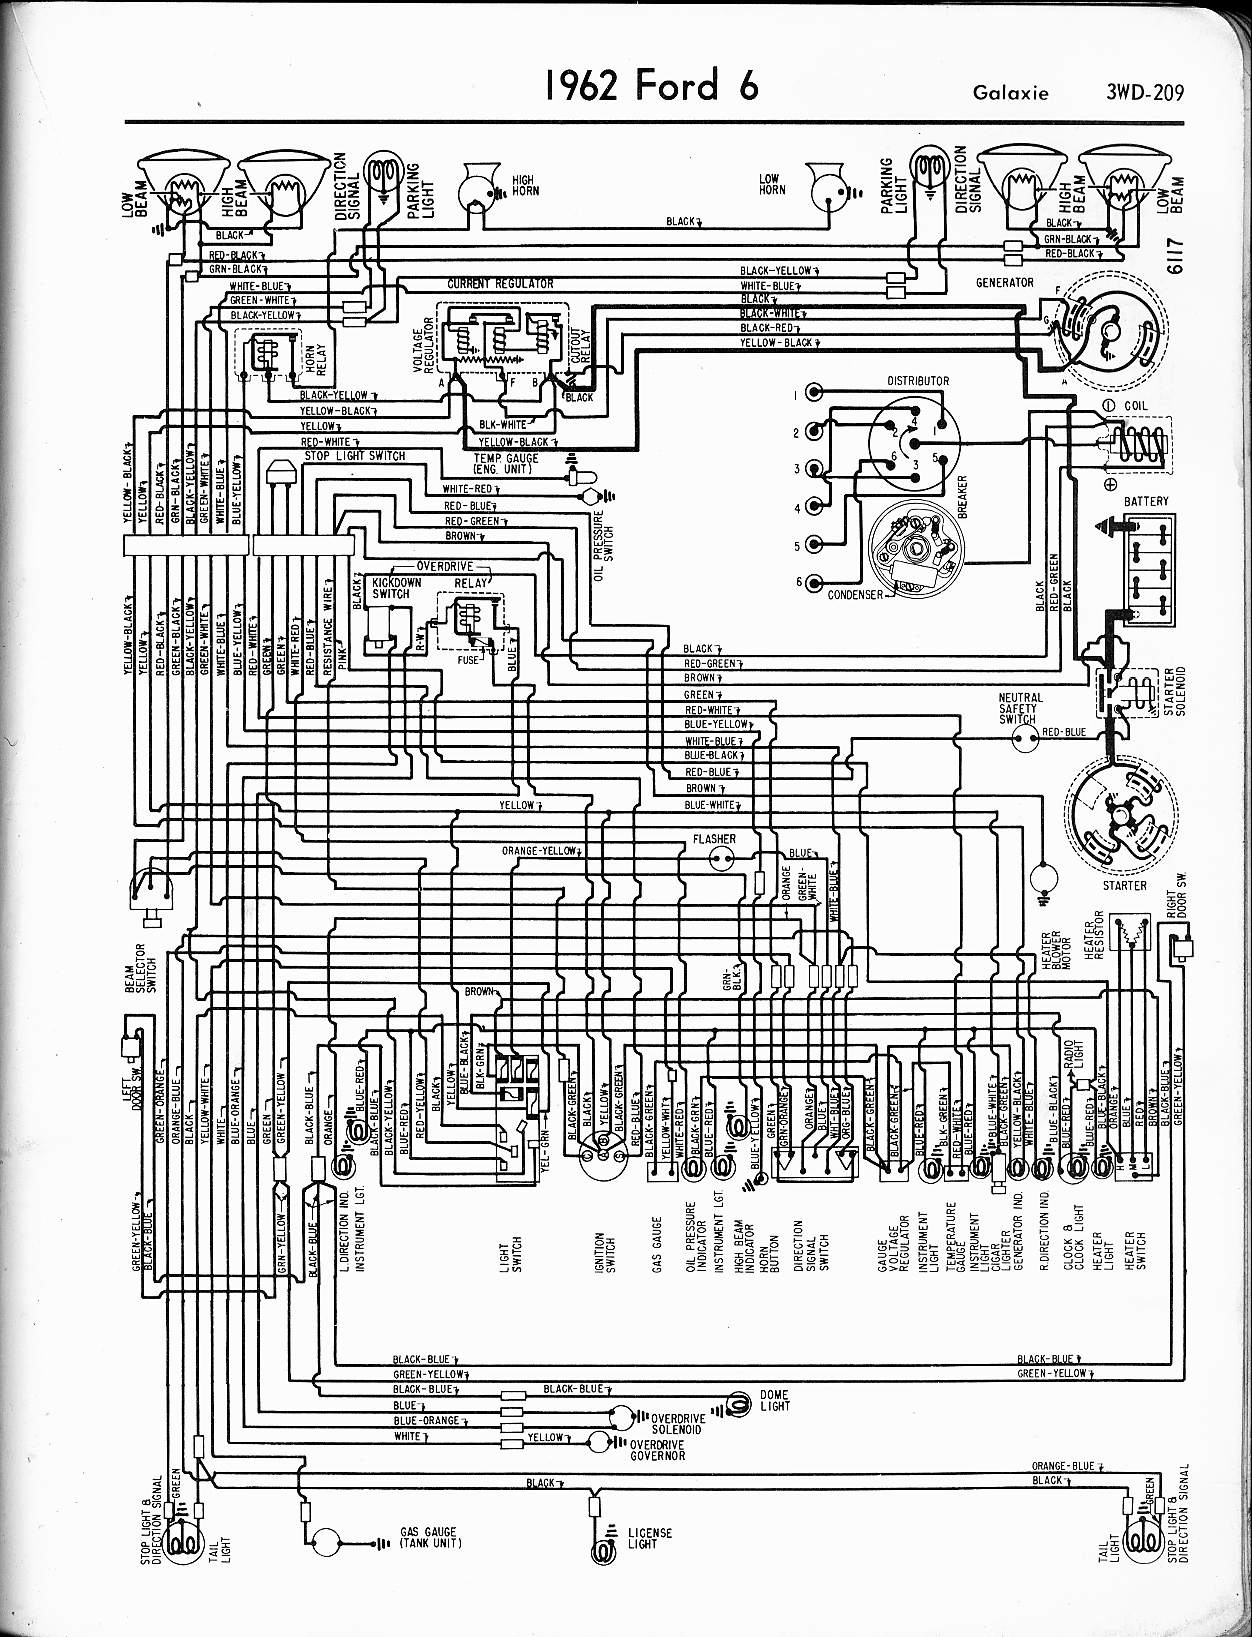 57 65 ford wiring diagrams rh oldcarmanualproject com gmc c5500 wiring diagram gmc c5500 wiring diagram